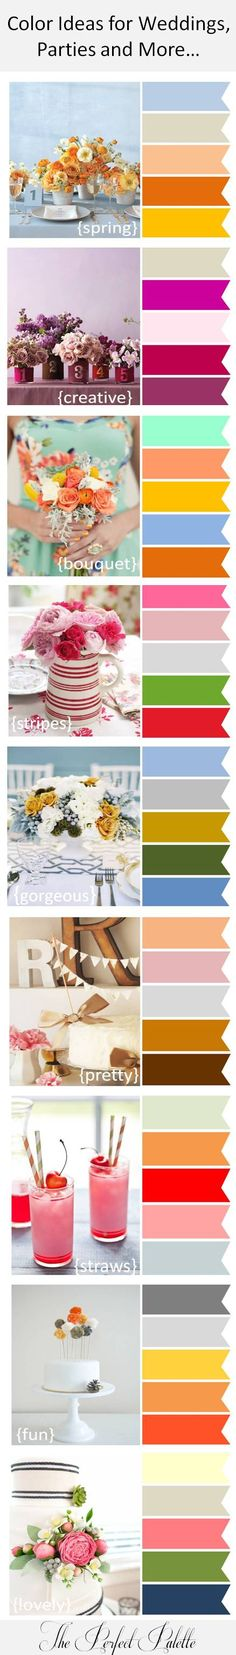 Schemes for weddings/parties